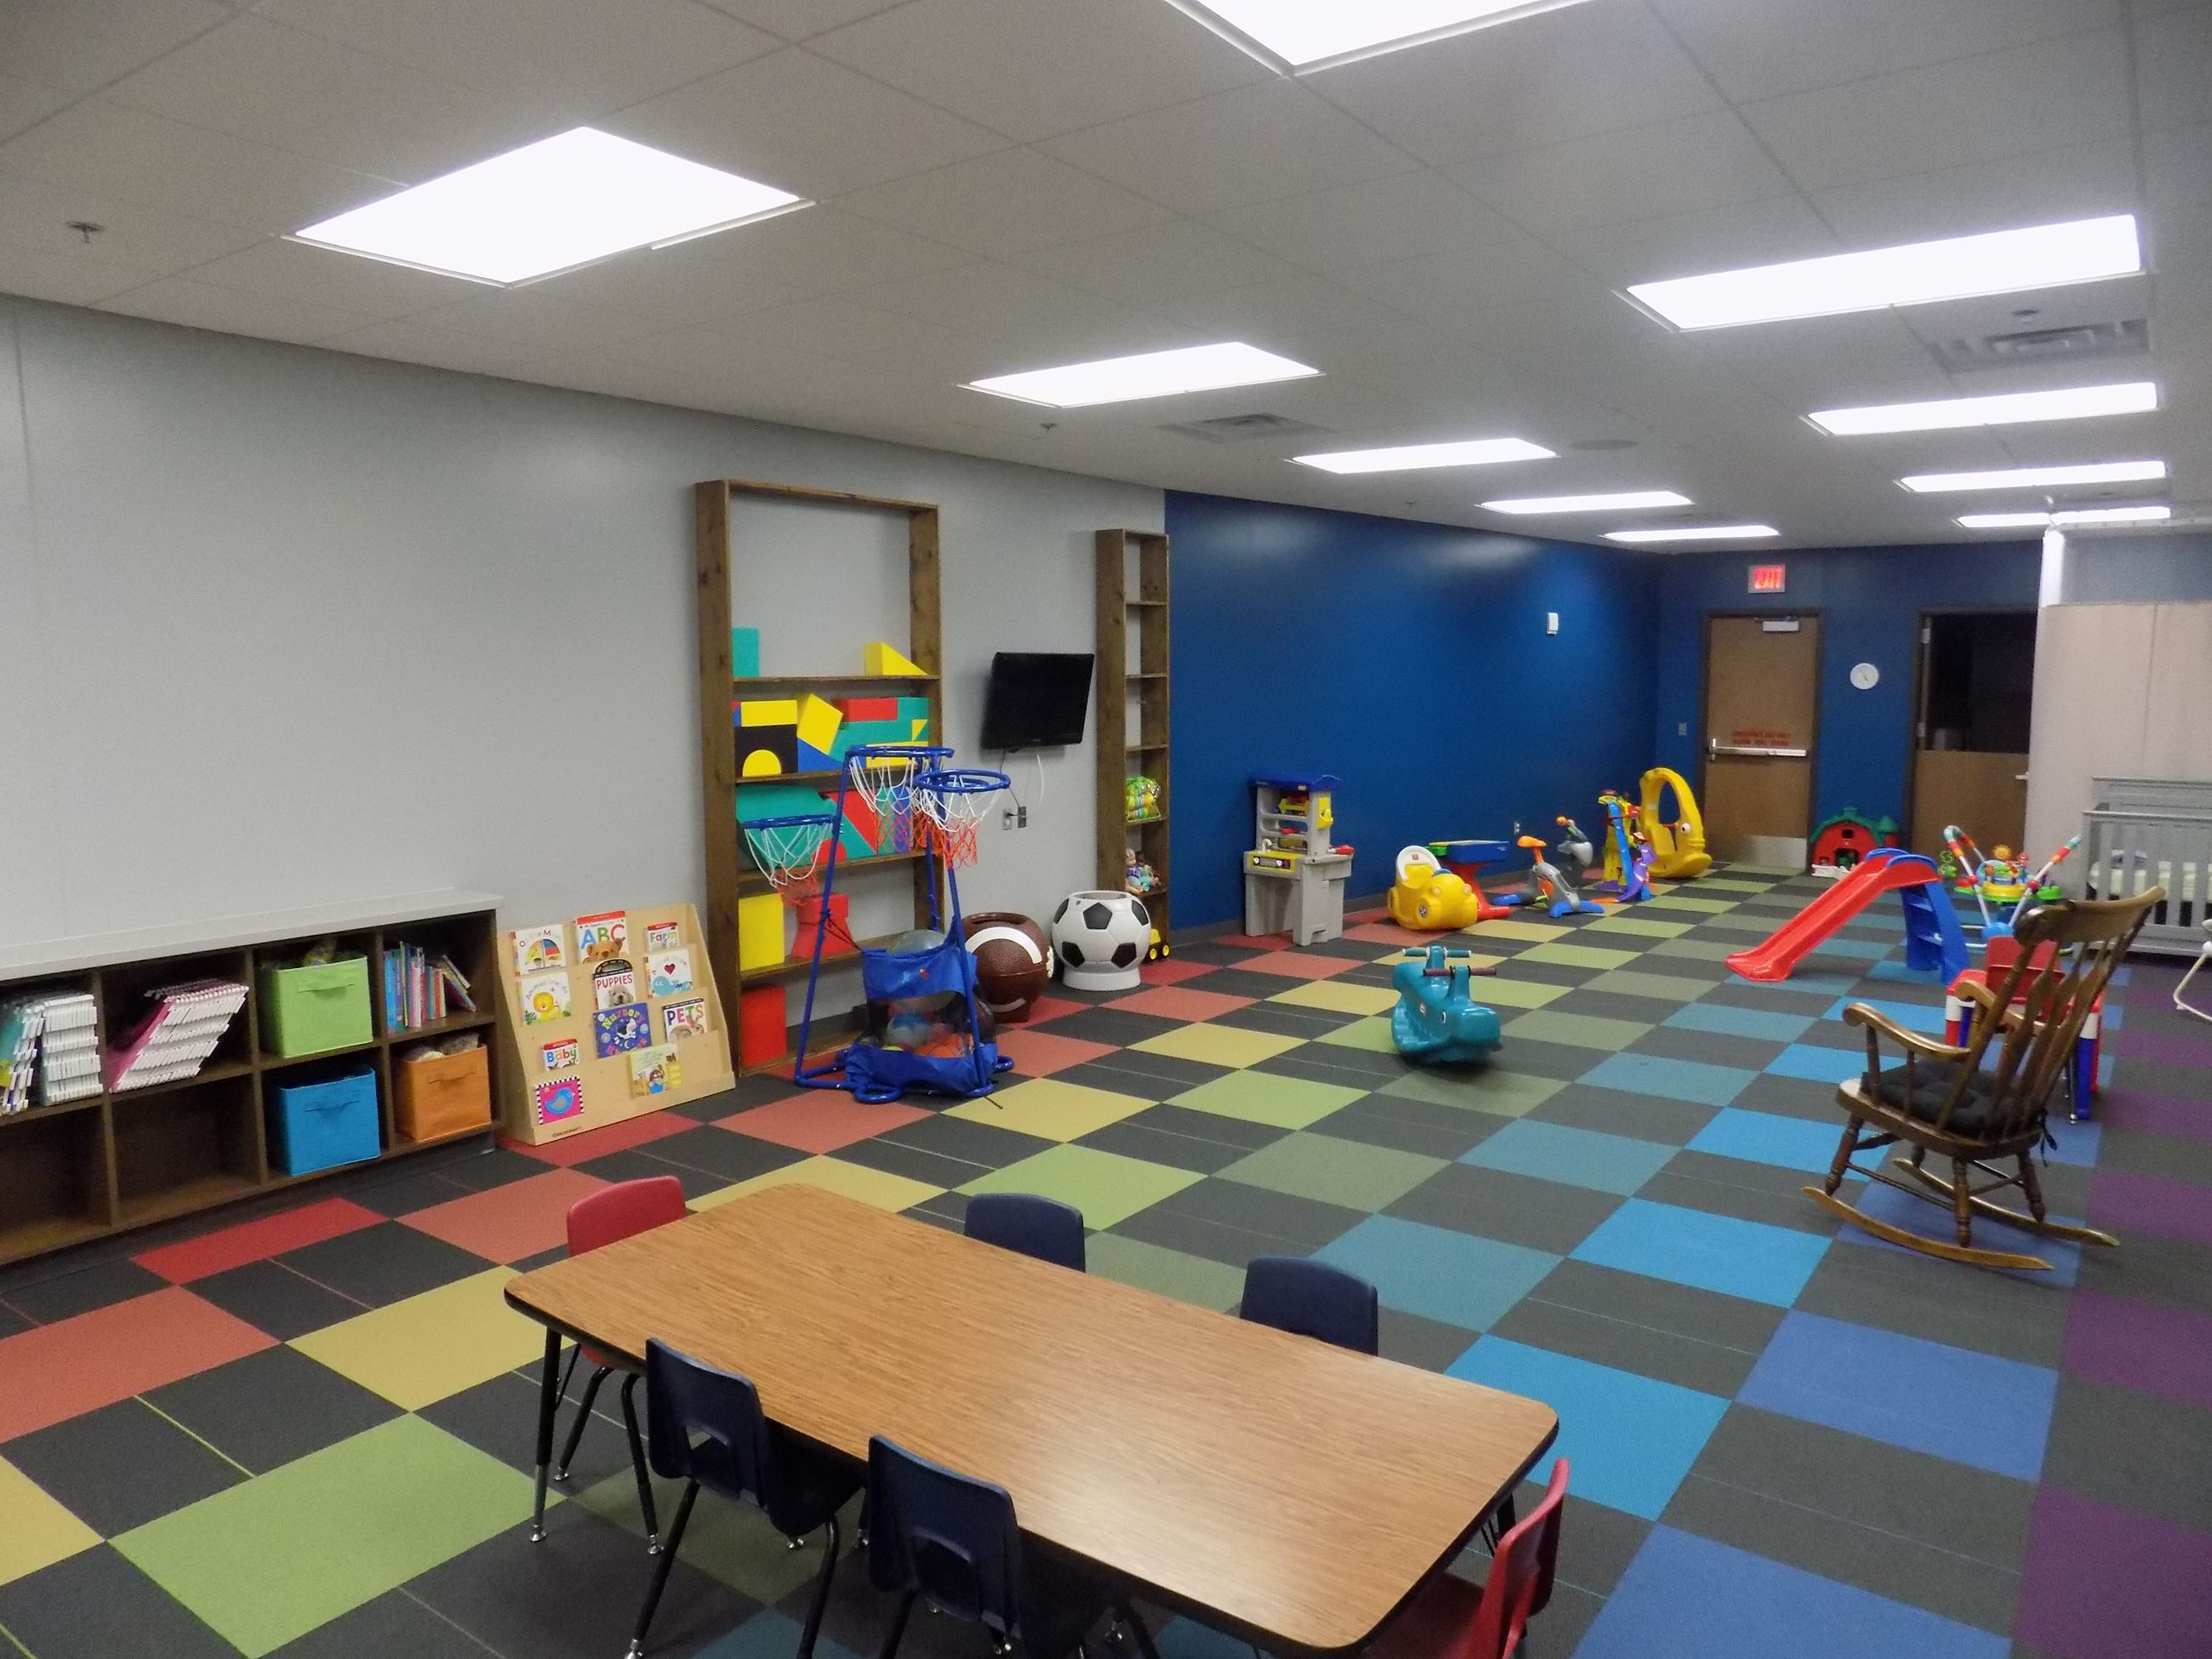 A children's playroom full of toys